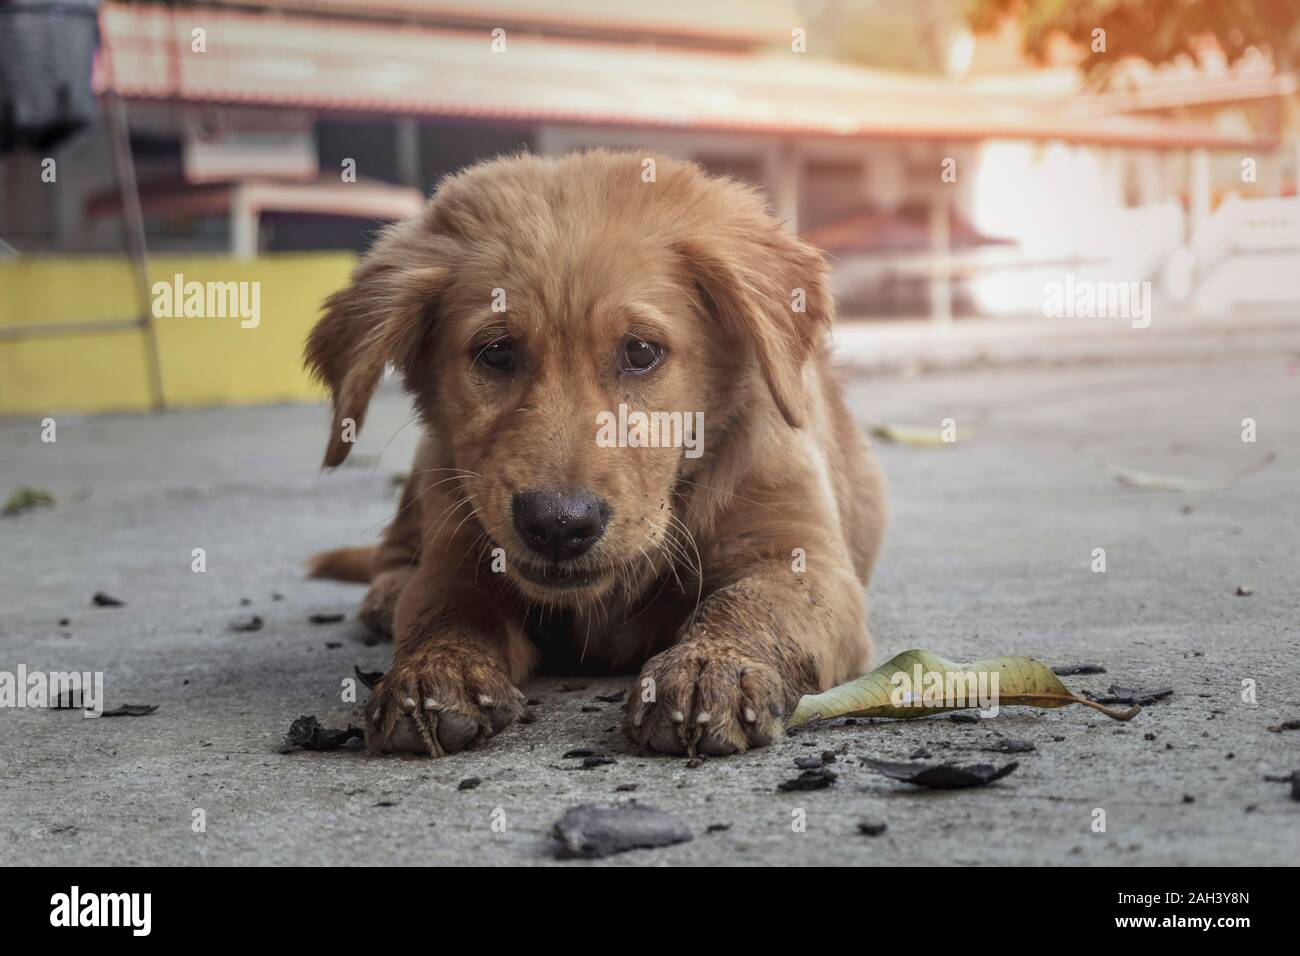 Dog Puppy Breed Golden Retriever Brown Playing On Ground Small Dog Cute For Friendly Stock Photo Alamy